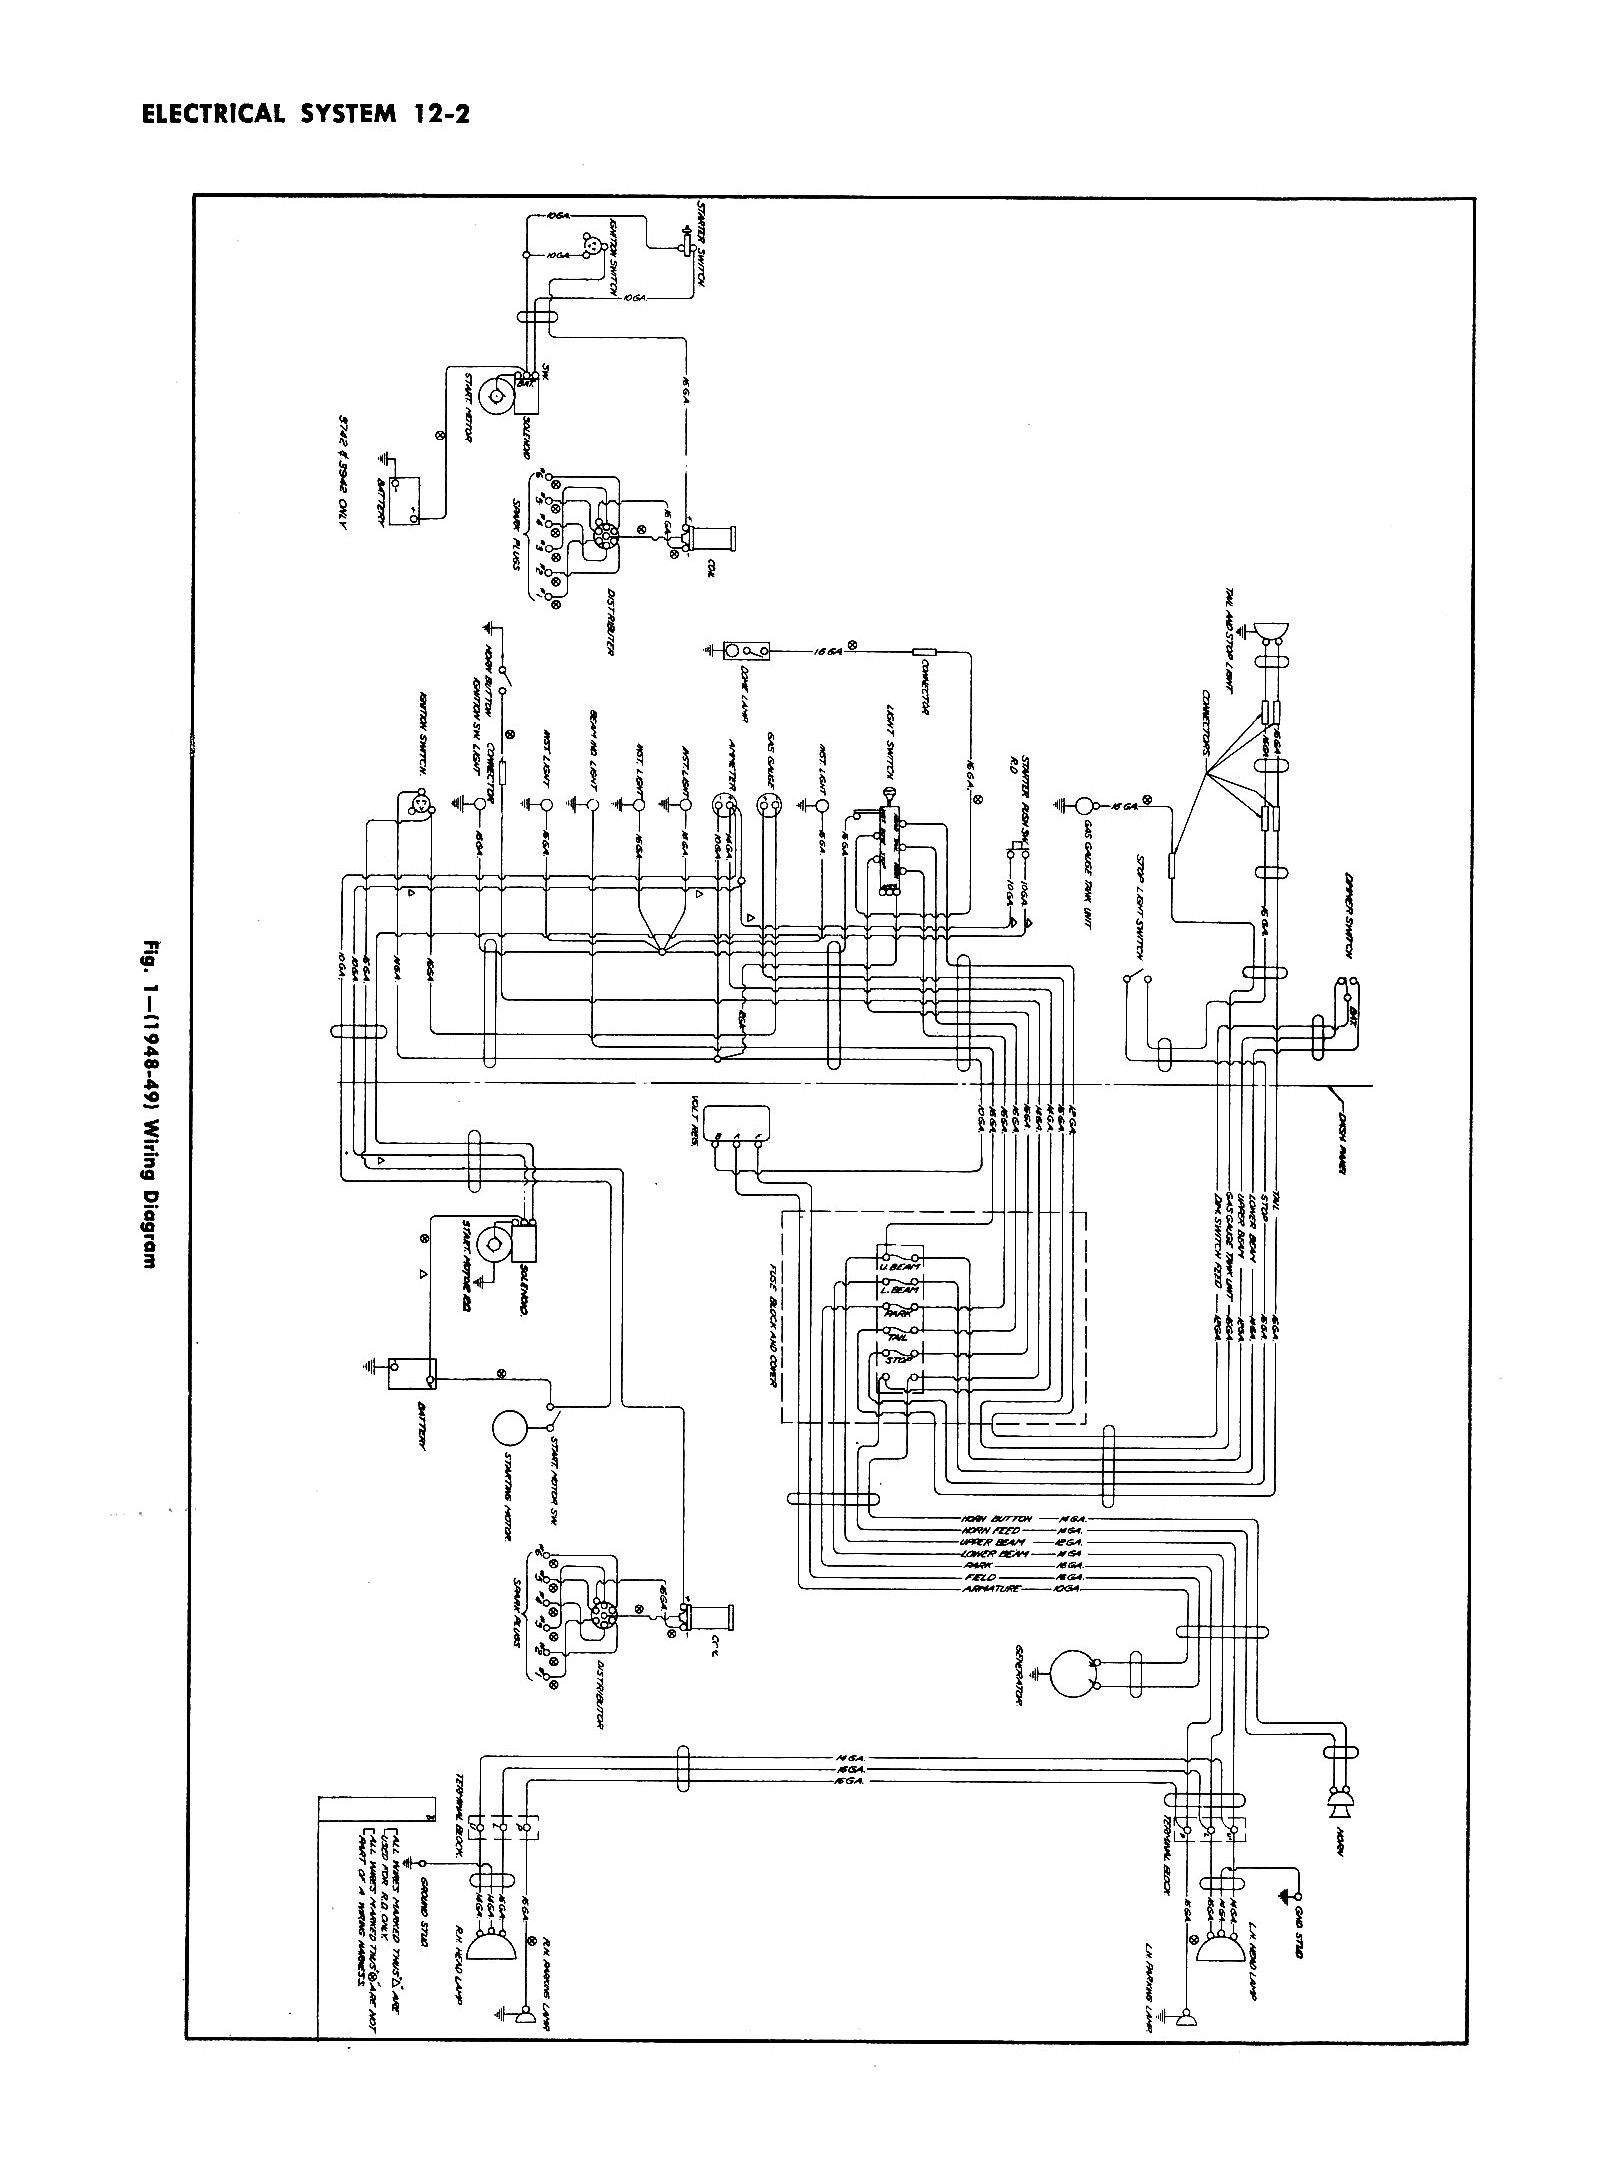 Electrical Wiring Diagram 1978 Gmc Reinvent Your 1981 Jimmy 1958 Experts Of U2022 Rh Evilcloud Co Uk 1995